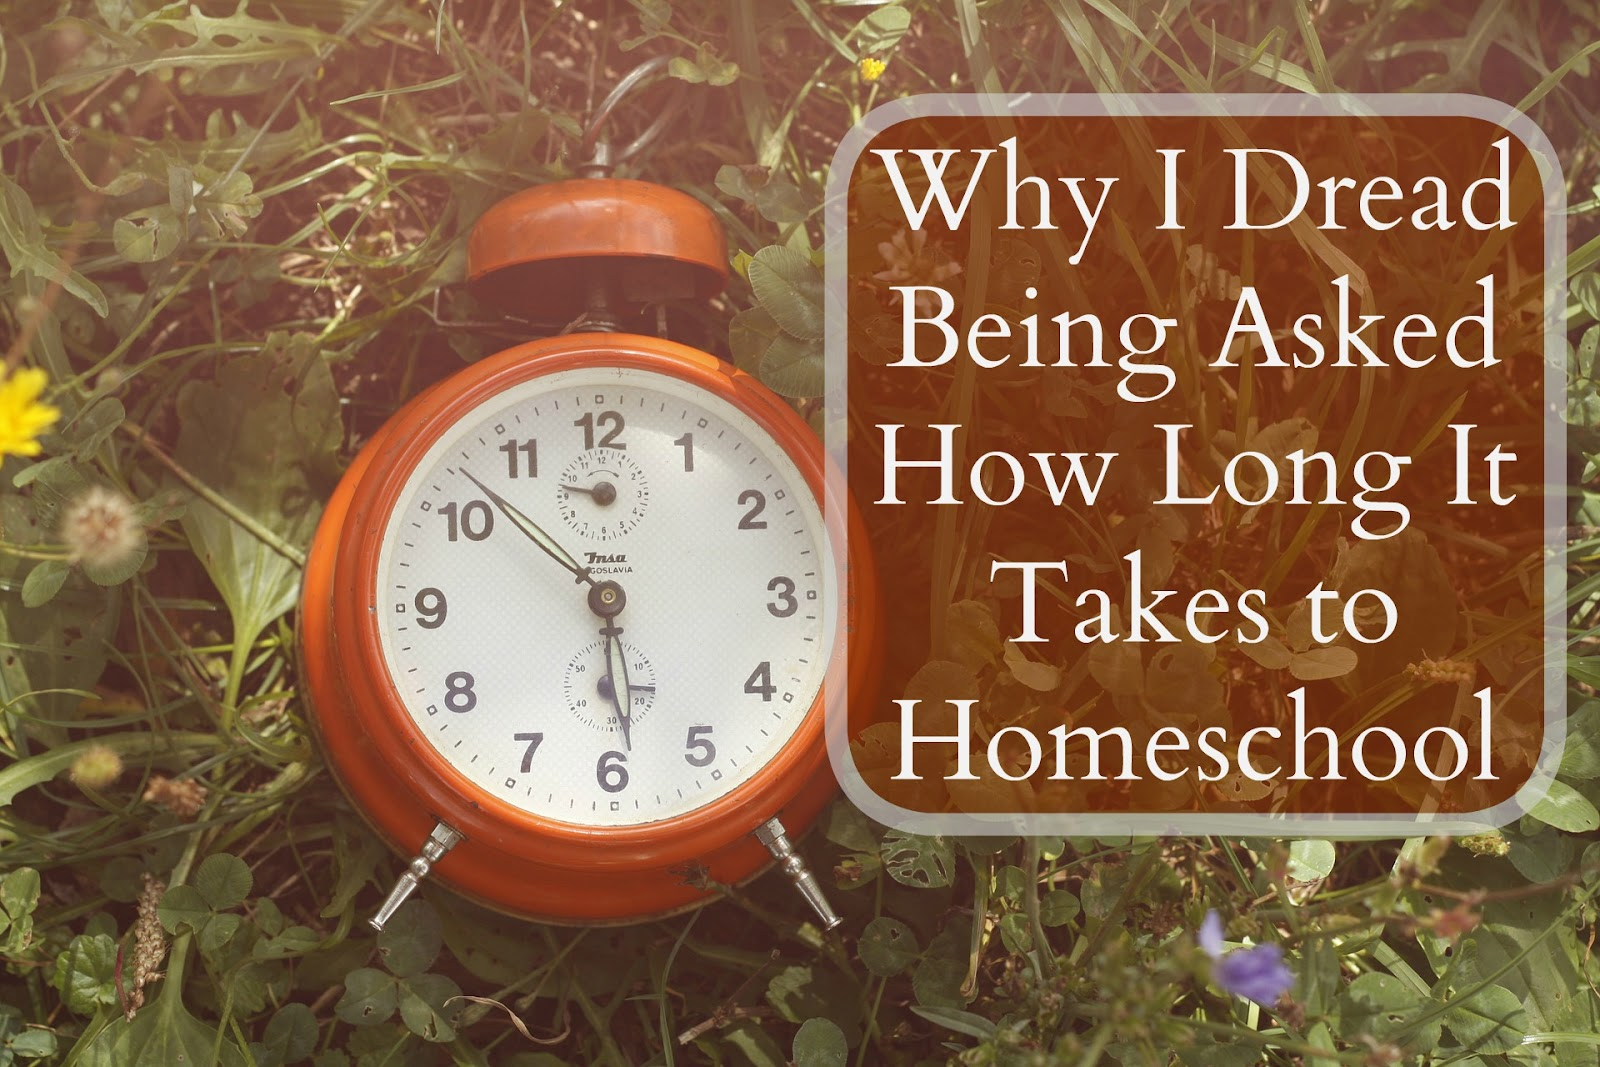 """It may sound silly but I really dread answering the question """"so how long does homeschooling take?"""""""